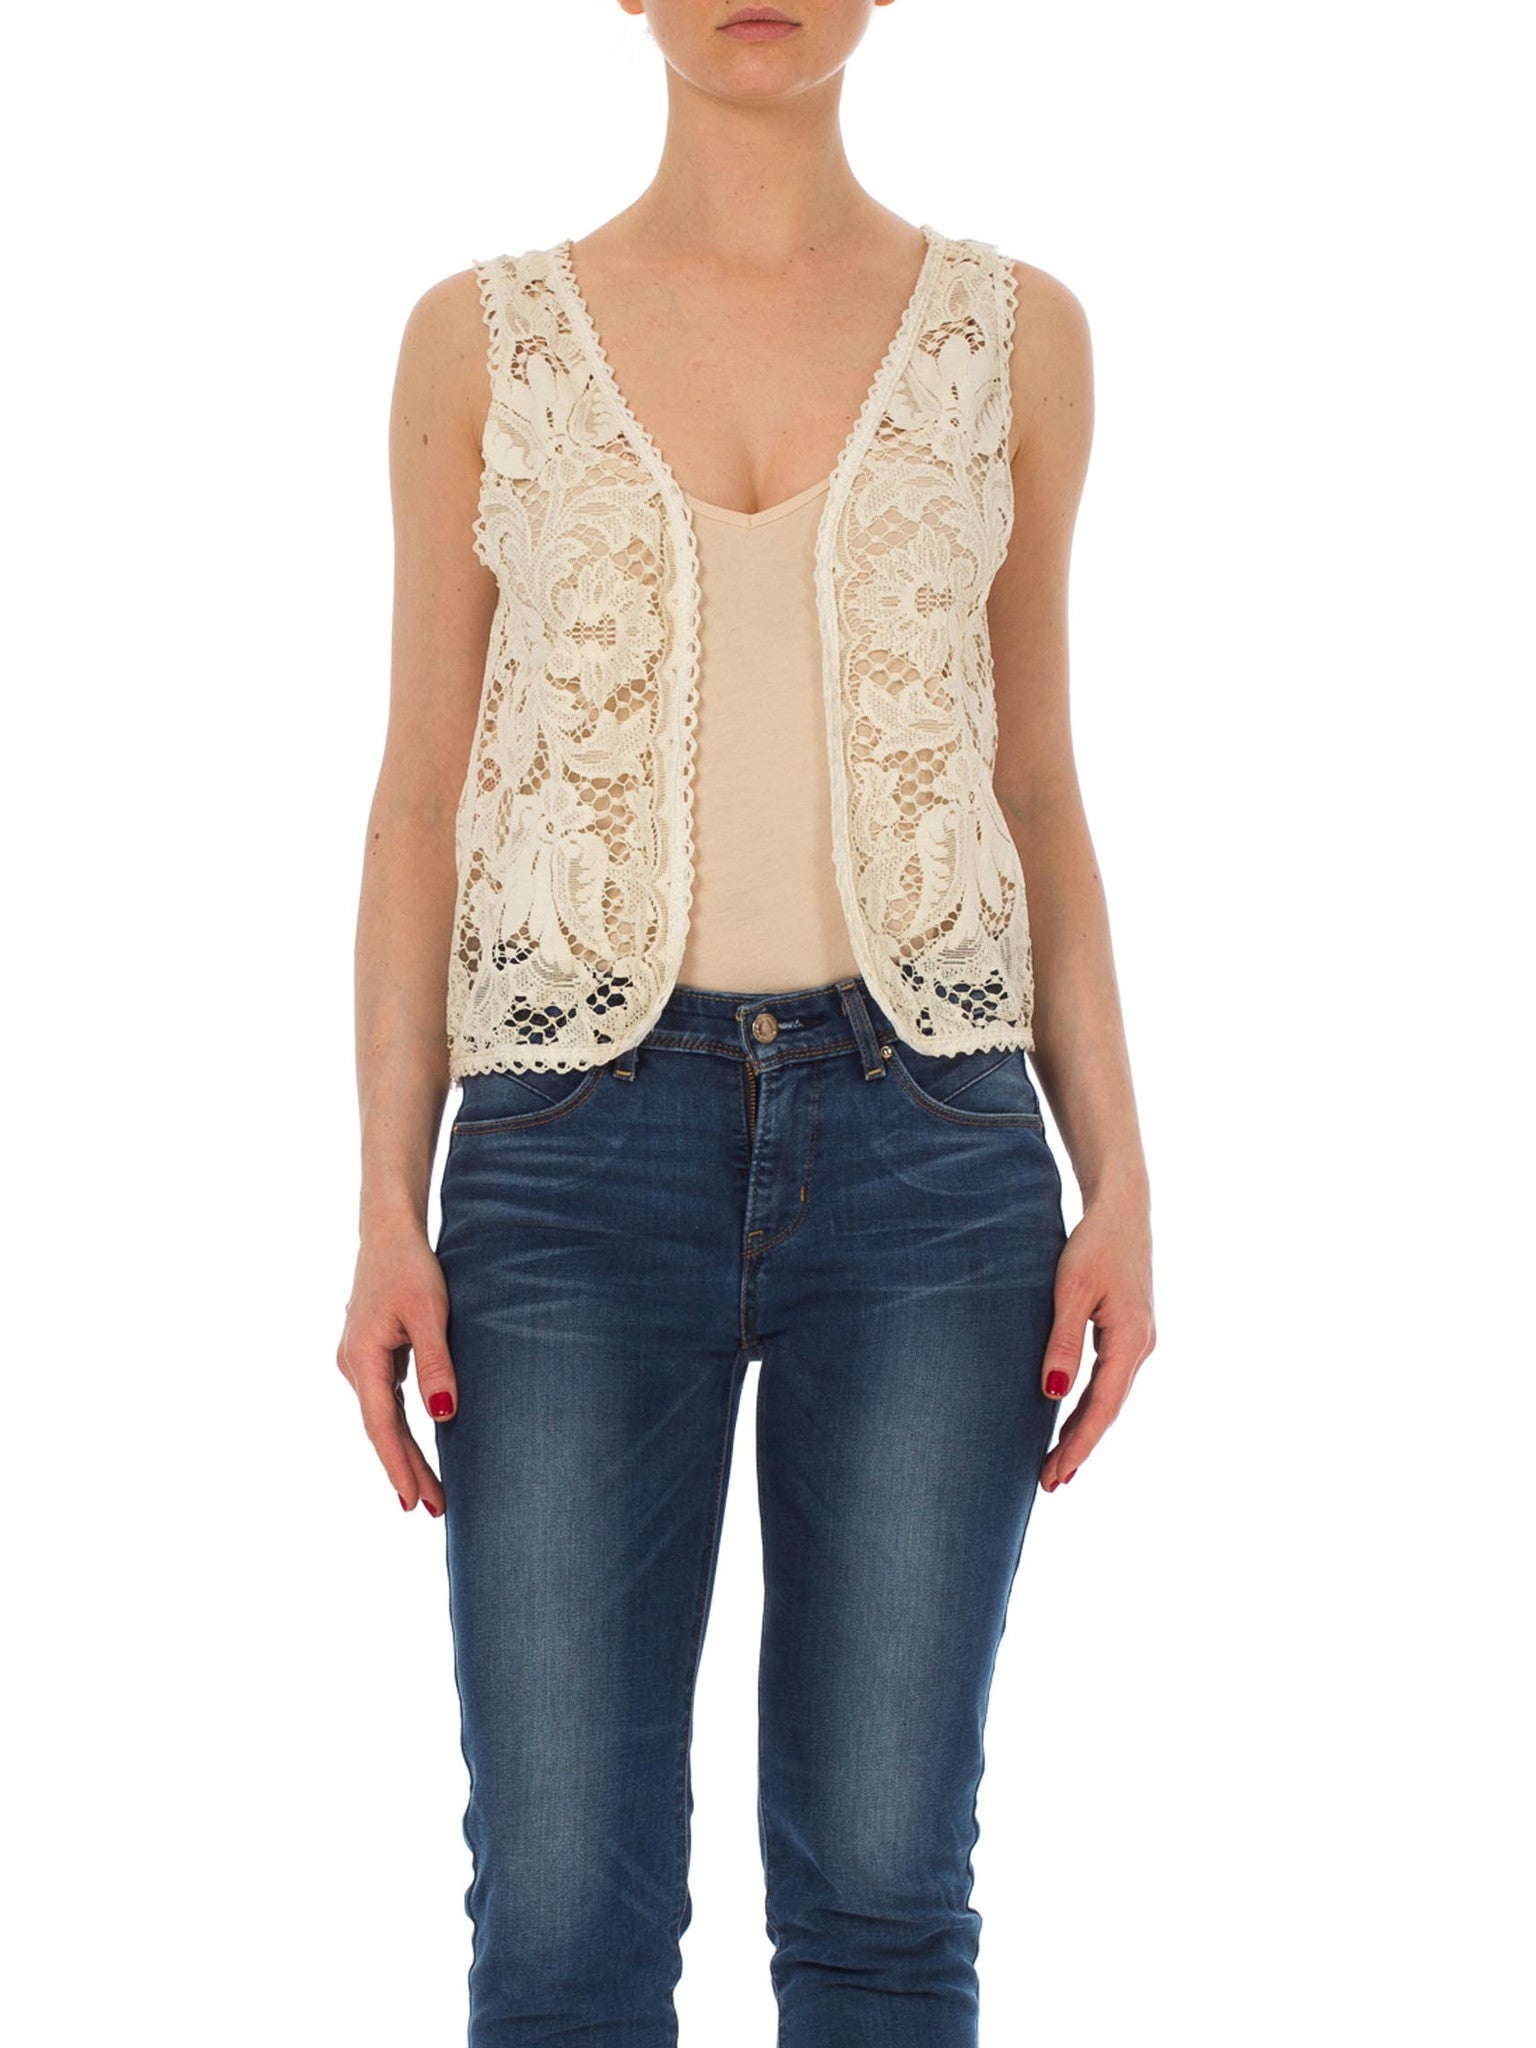 1960s Victorian Style  Lace Sheer Floral White Vest